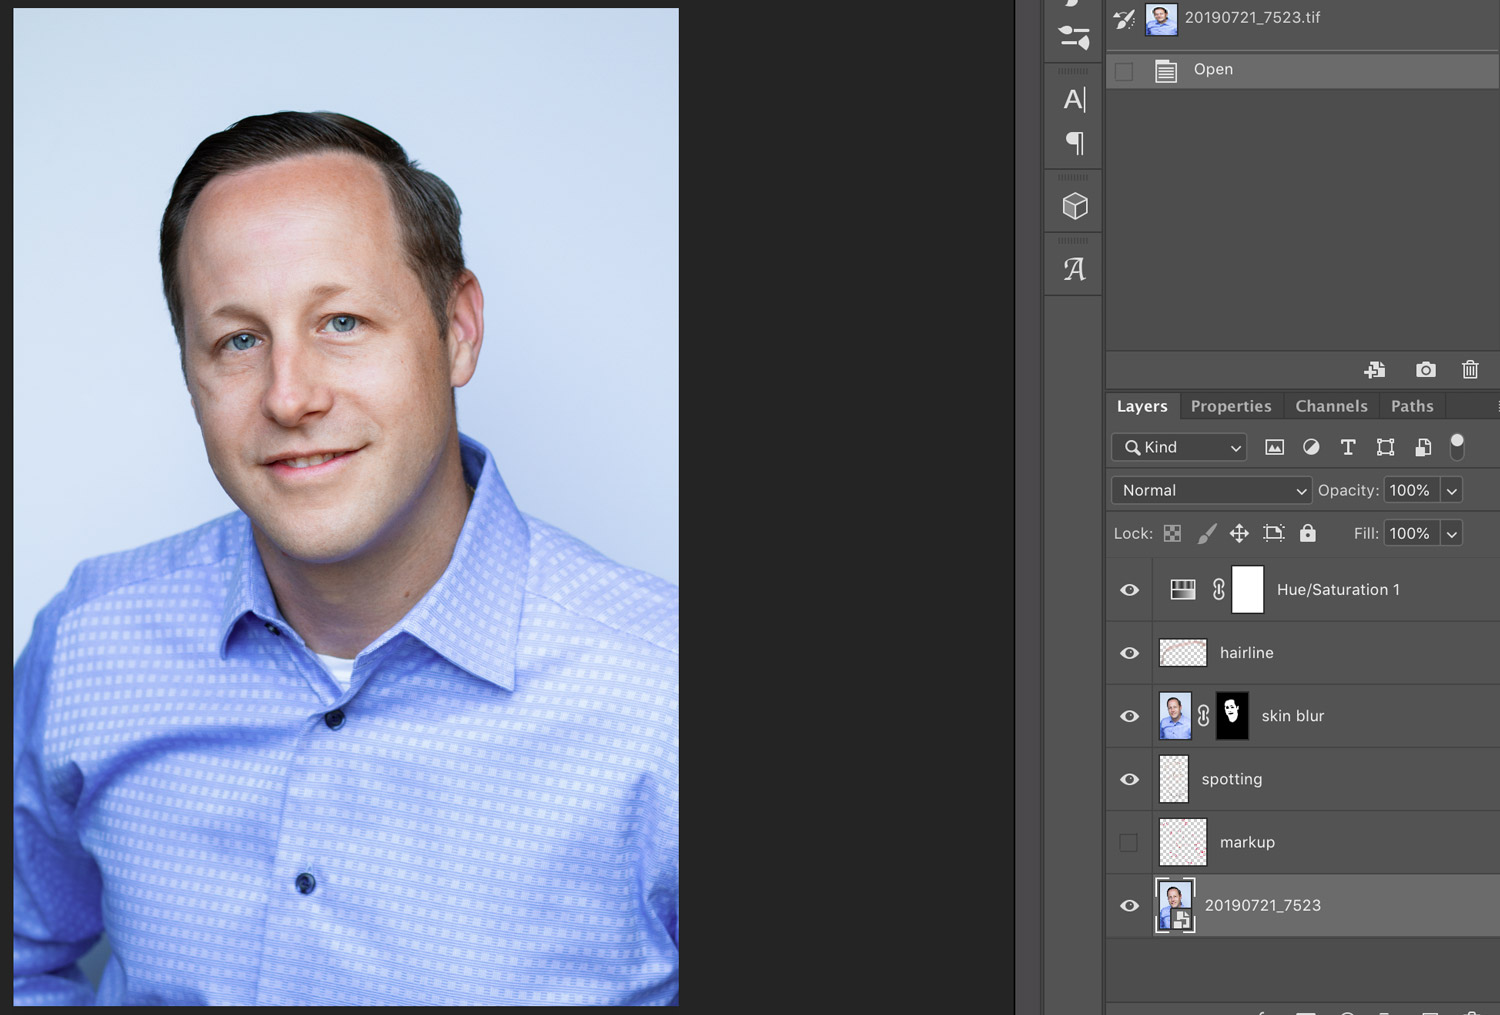 Professional Headshot after retouching in Adobe Photoshop